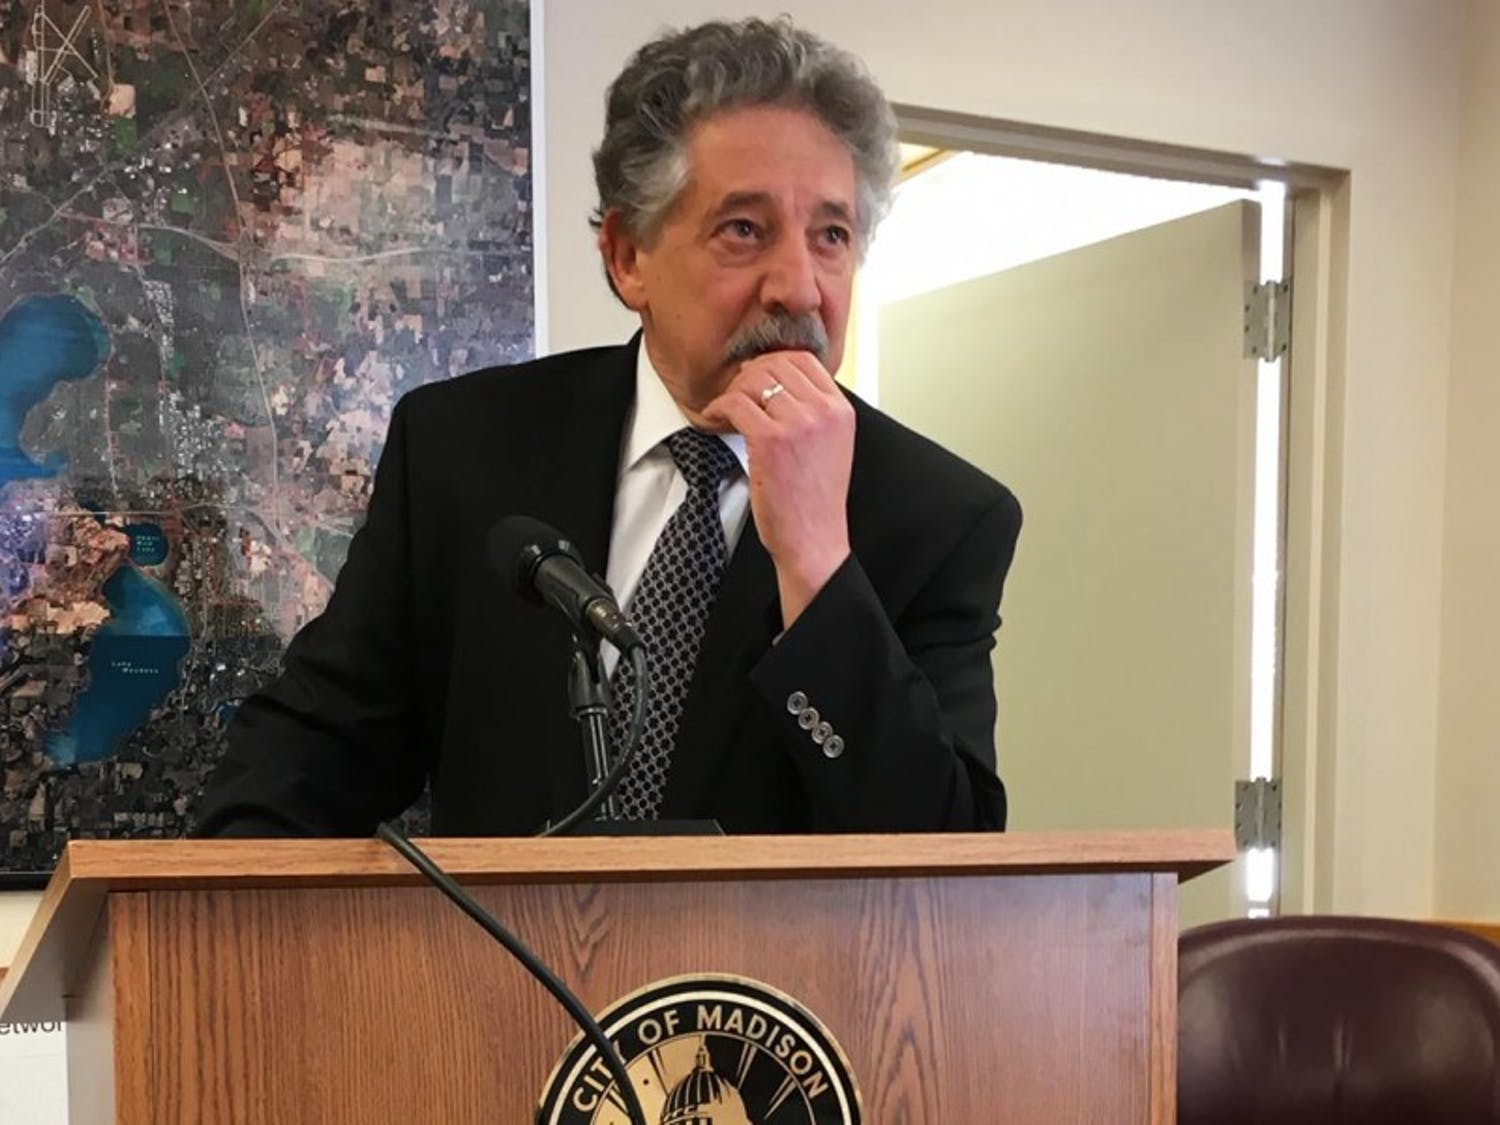 Mayor PaulSoglin held a press conference after Alders MarkClear and DavidAhrens announced the reforms Tuesday.